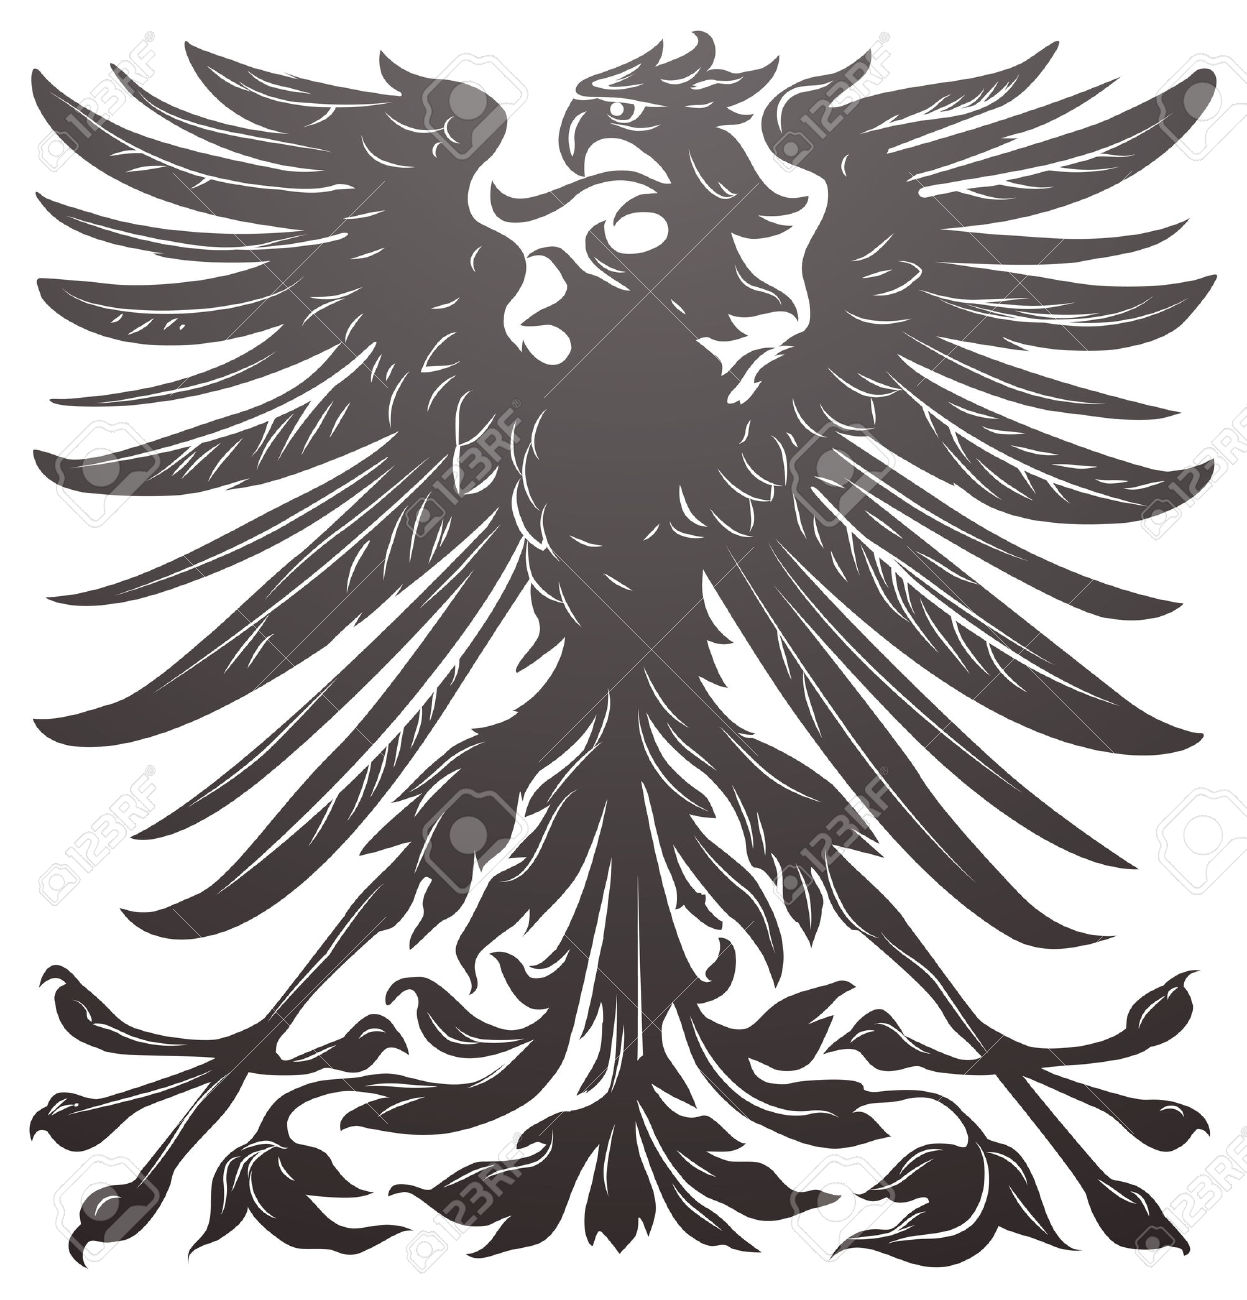 Black Eagle clipart roman eagle On Black my about Tattoo